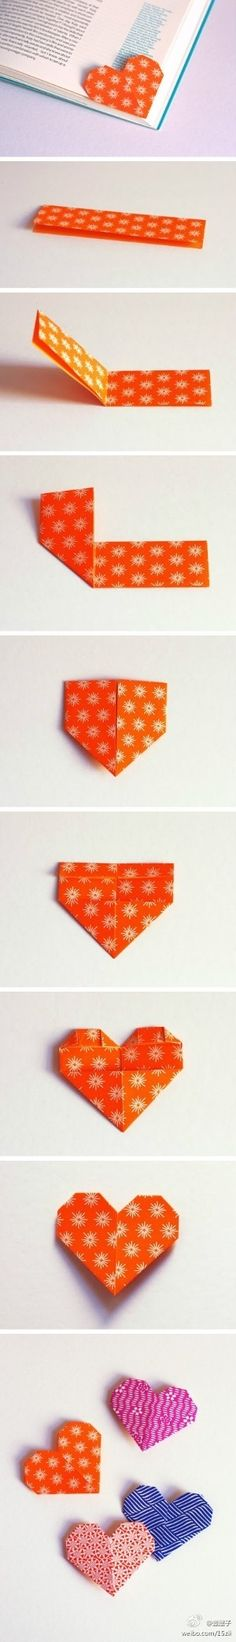 Origami- Origami sabine v.Appeldorn sabinevappeldor Kreatives Origami sabine v.Appeldorn Origami sabinevappeldor Origami Kreatives Origami sabine v. Kids Crafts, Cute Crafts, Diy And Crafts, Arts And Crafts, Easy Crafts, Creative Crafts, Diy Origami, Origami Paper, Heart Origami